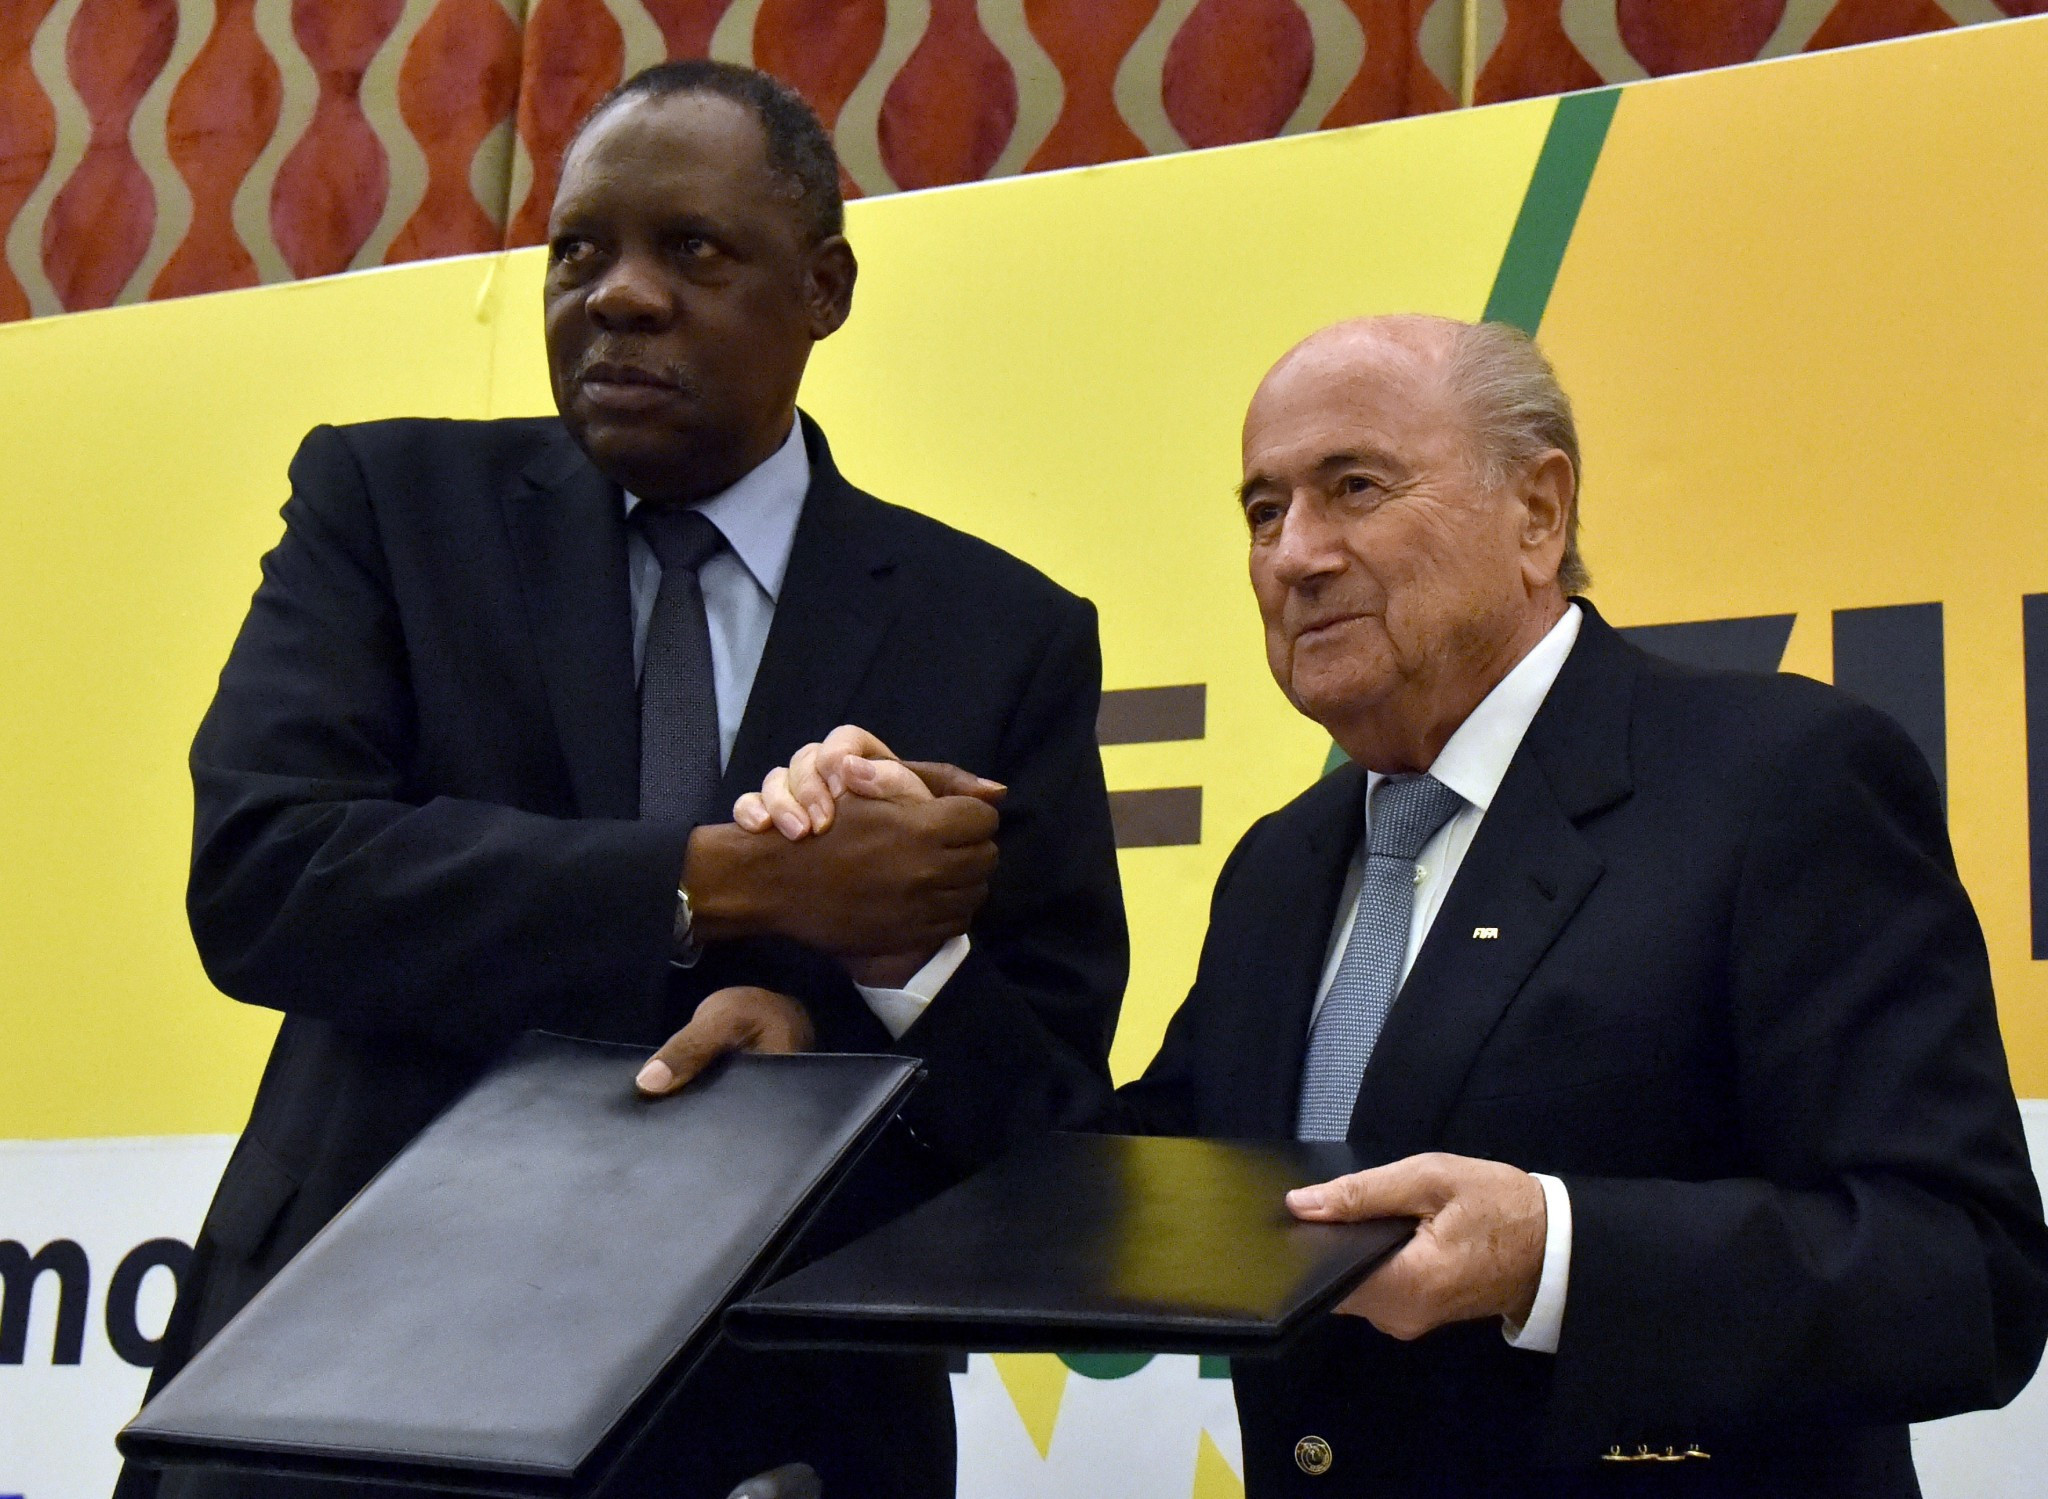 Issa Hayatou, (pictured, left, with Sepp Blatter) has become interim President of FIFA ©Getty Images